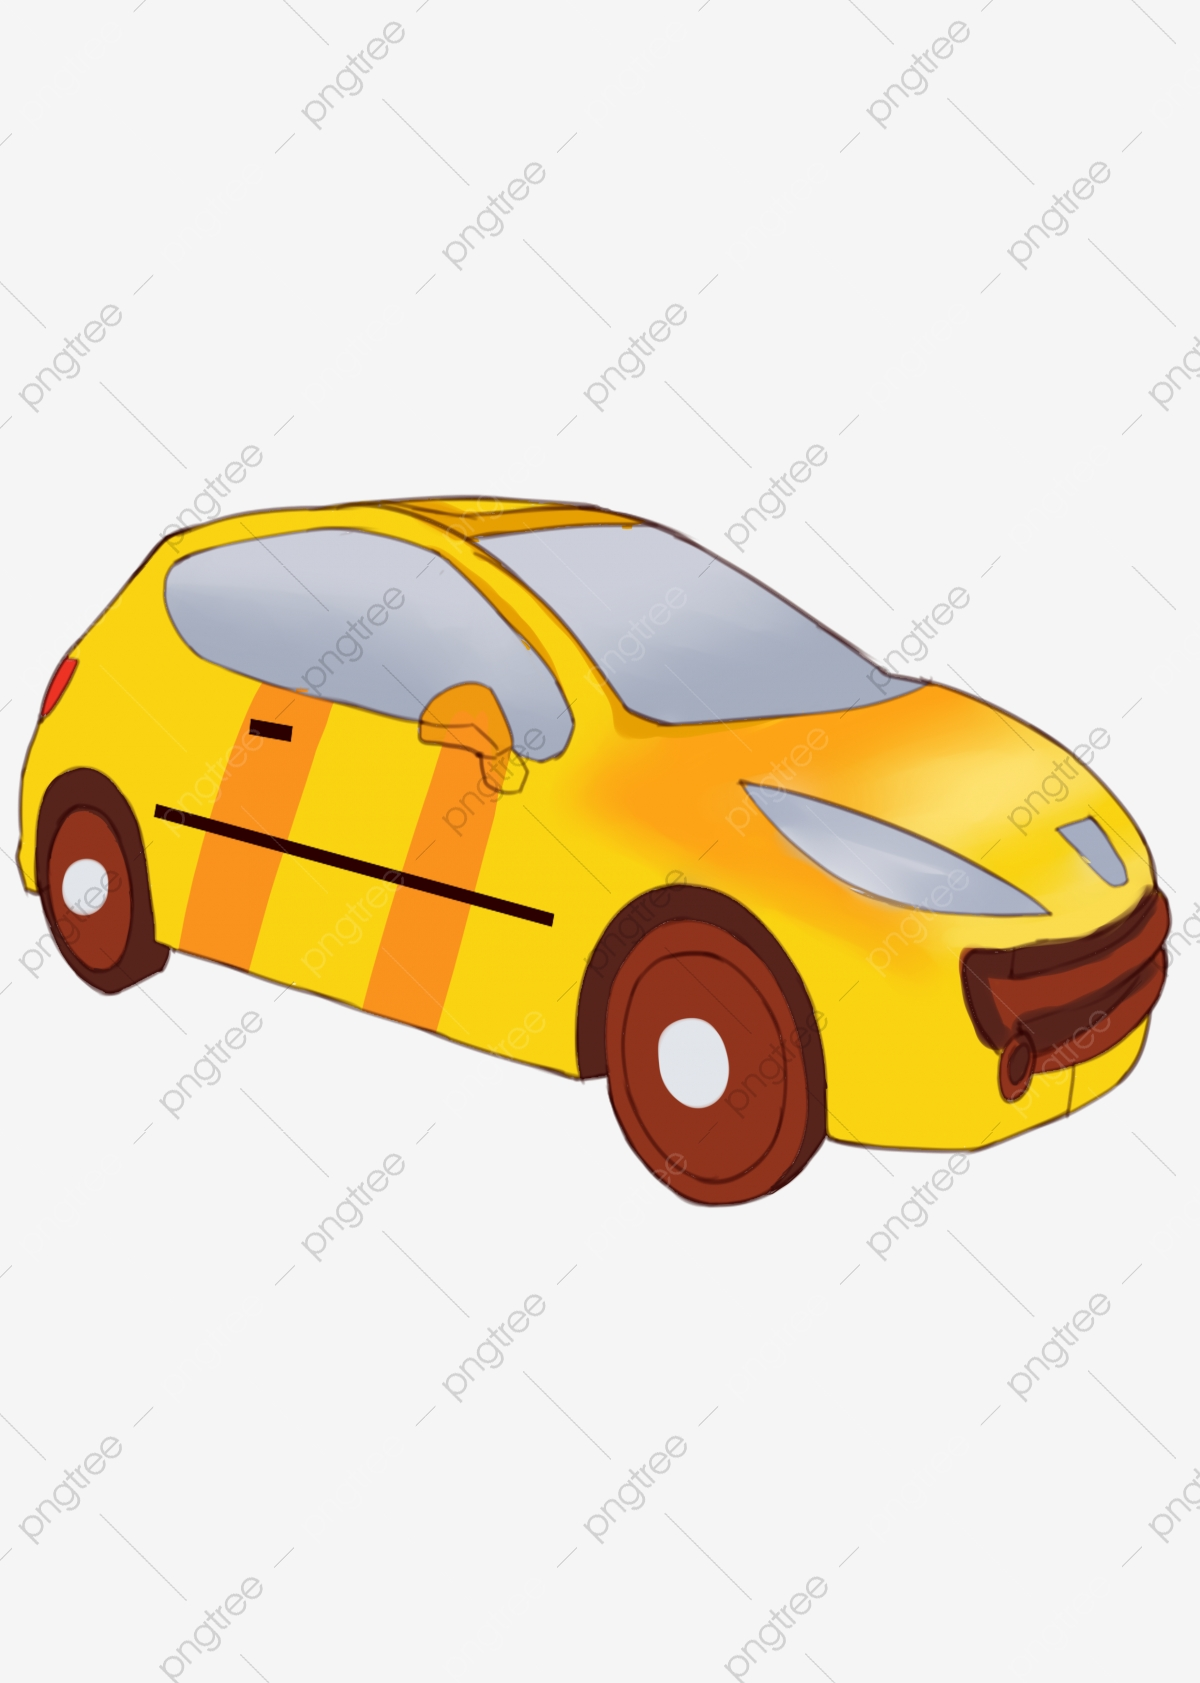 Car Cartoon Png : cartoon, Transportation, Drawn, Cartoon,, Painted,, Vehicle,, Yellow, Transparent, Clipart, Image, Download